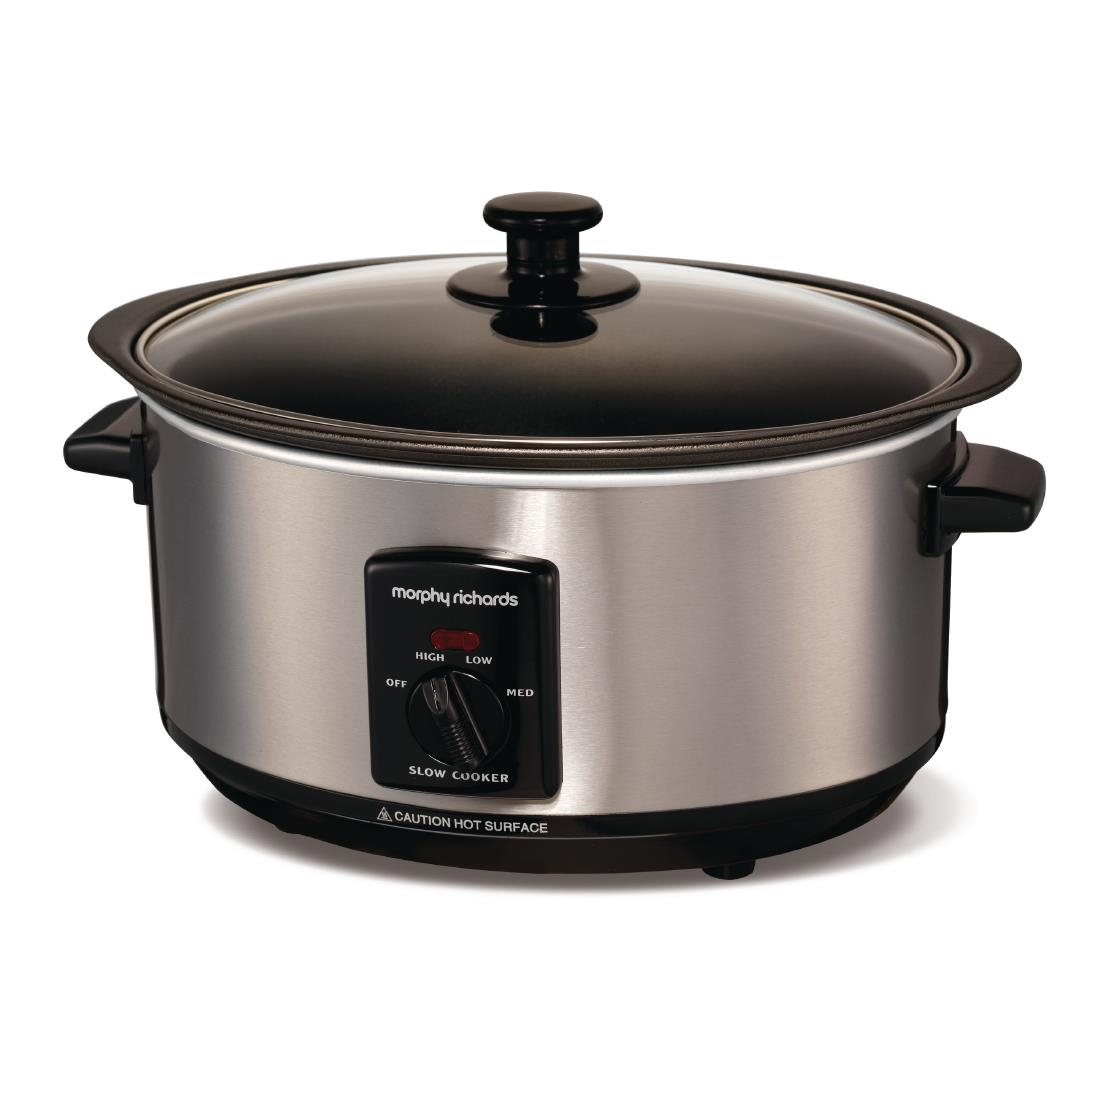 morphy richards slow cooker instructions